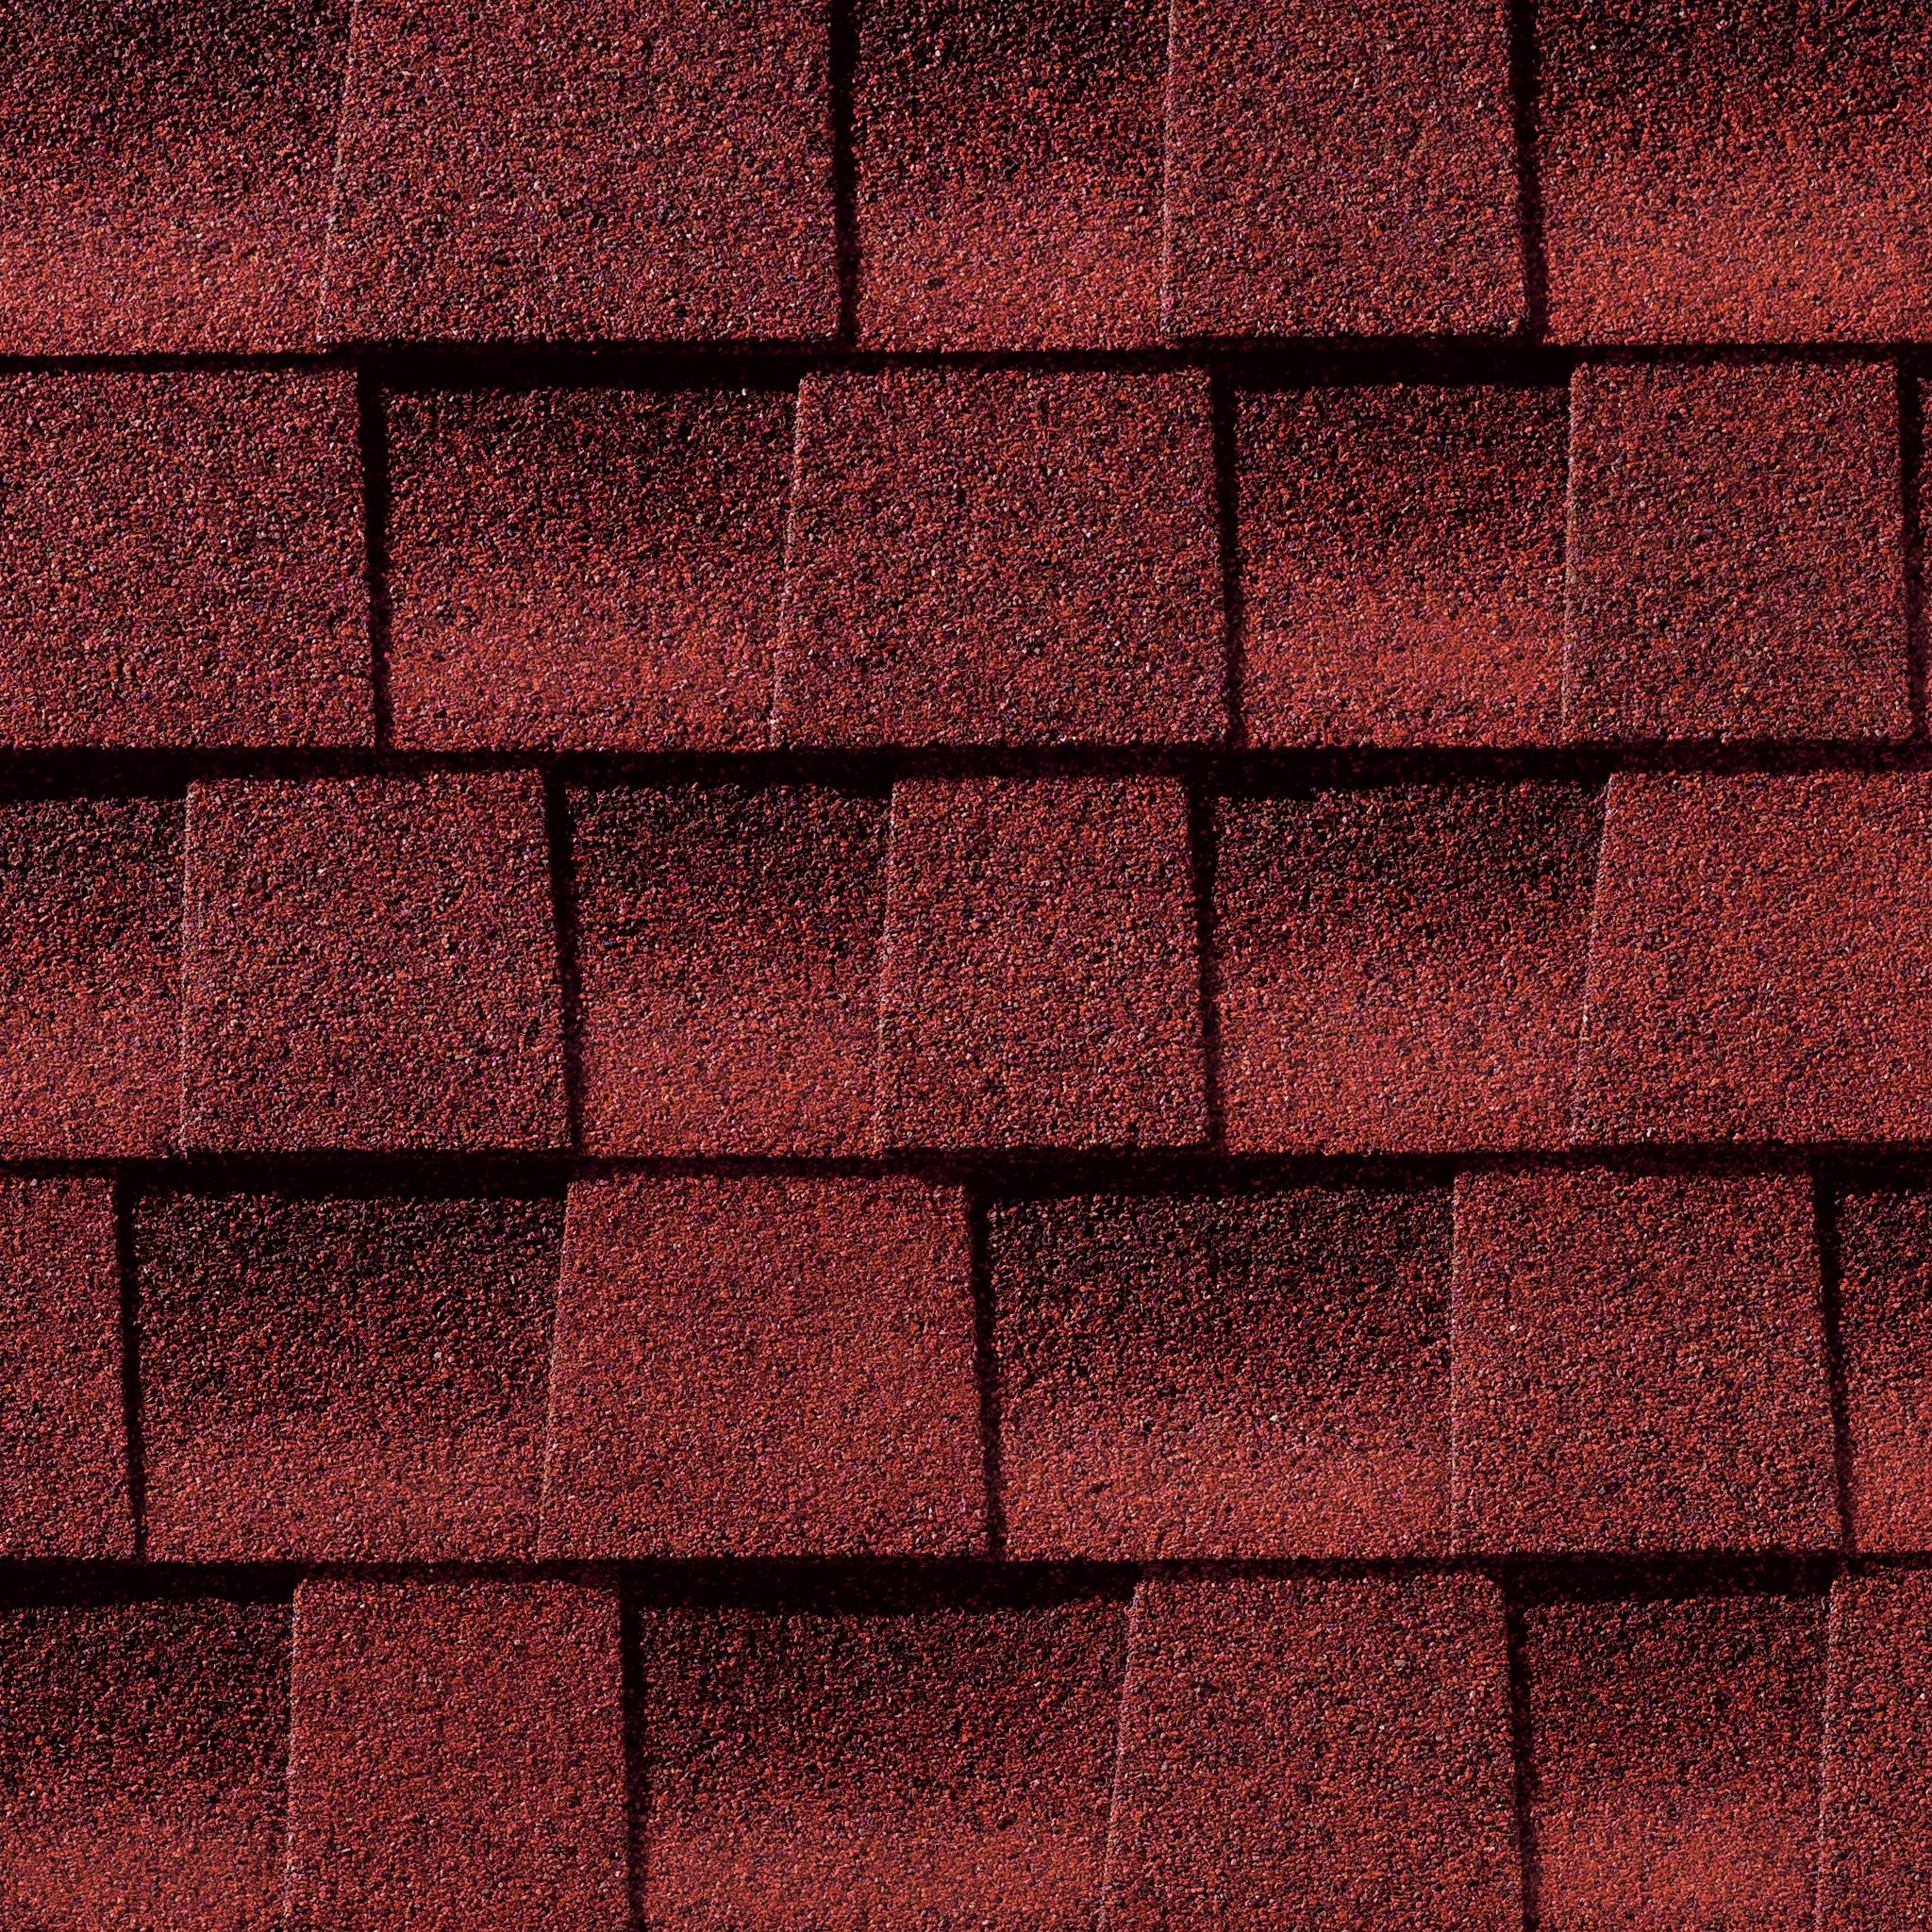 GAF Timberline Ultra HD Patriot Red Shingle Swatc